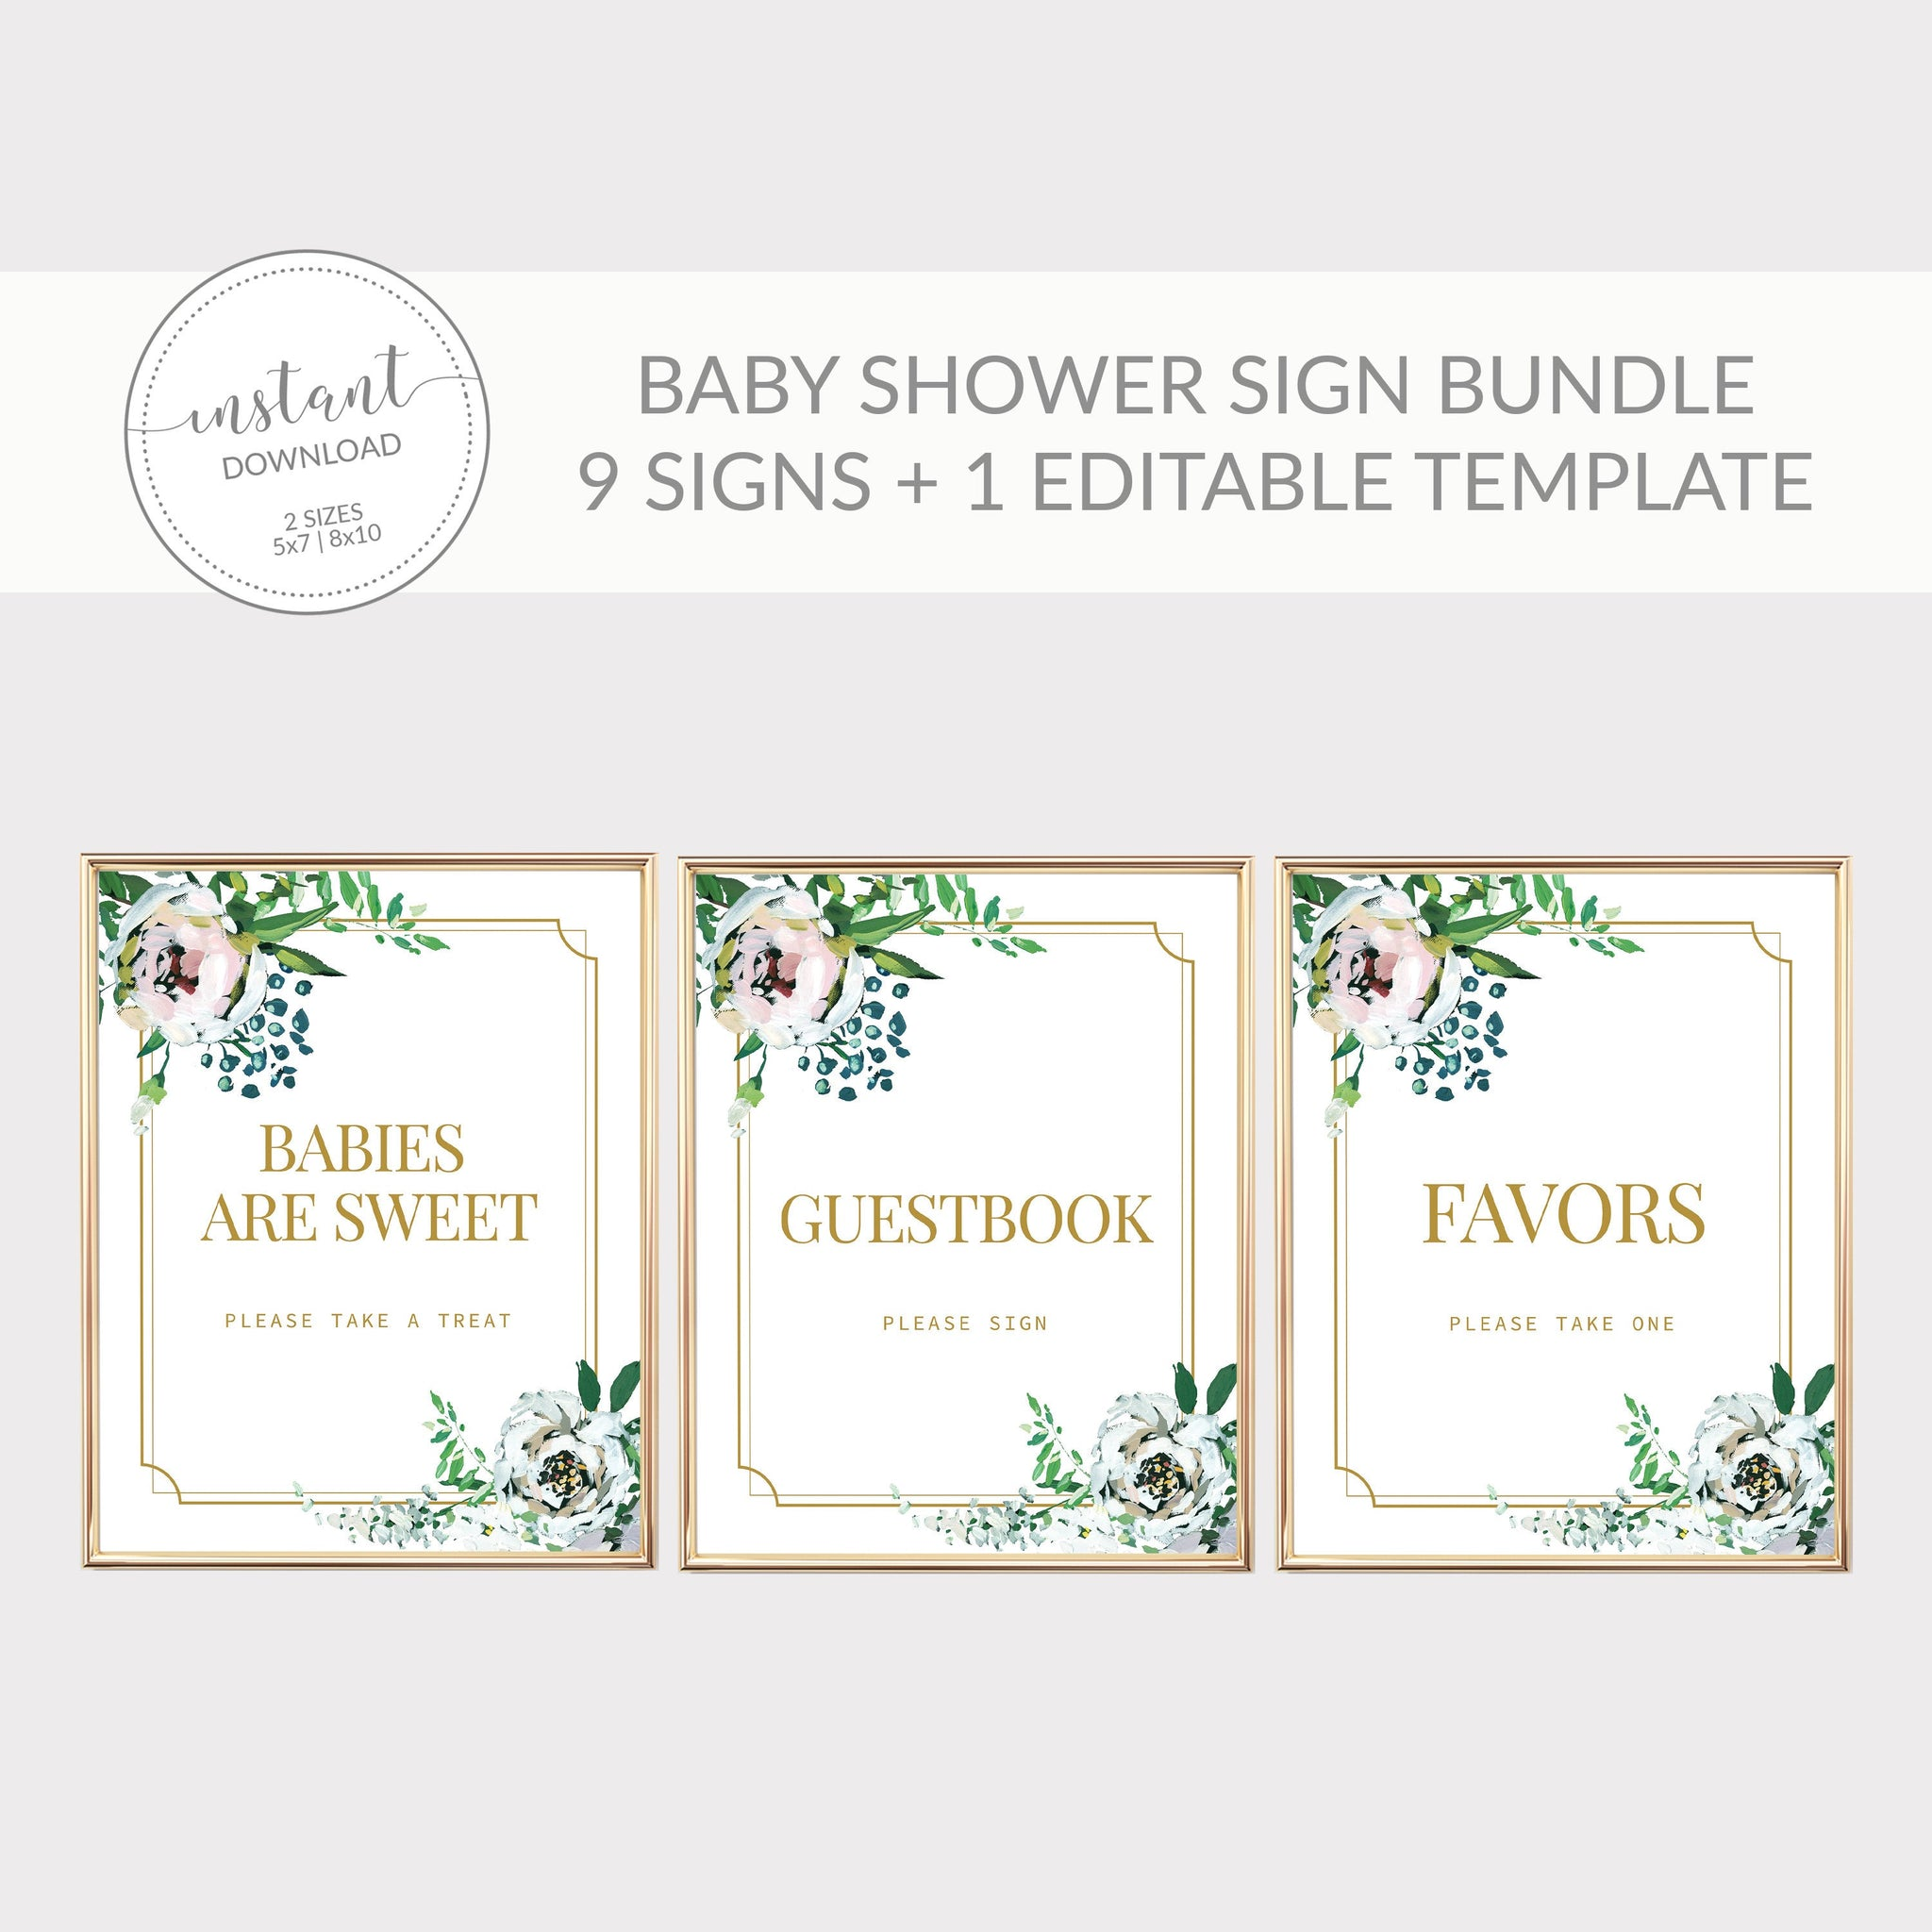 Blush Floral Greenery Printable Baby Shower Sign Bundle, INSTANT DOWNLOAD, Editable Baby Shower Sign Template, Decorations Supplies - BFG100